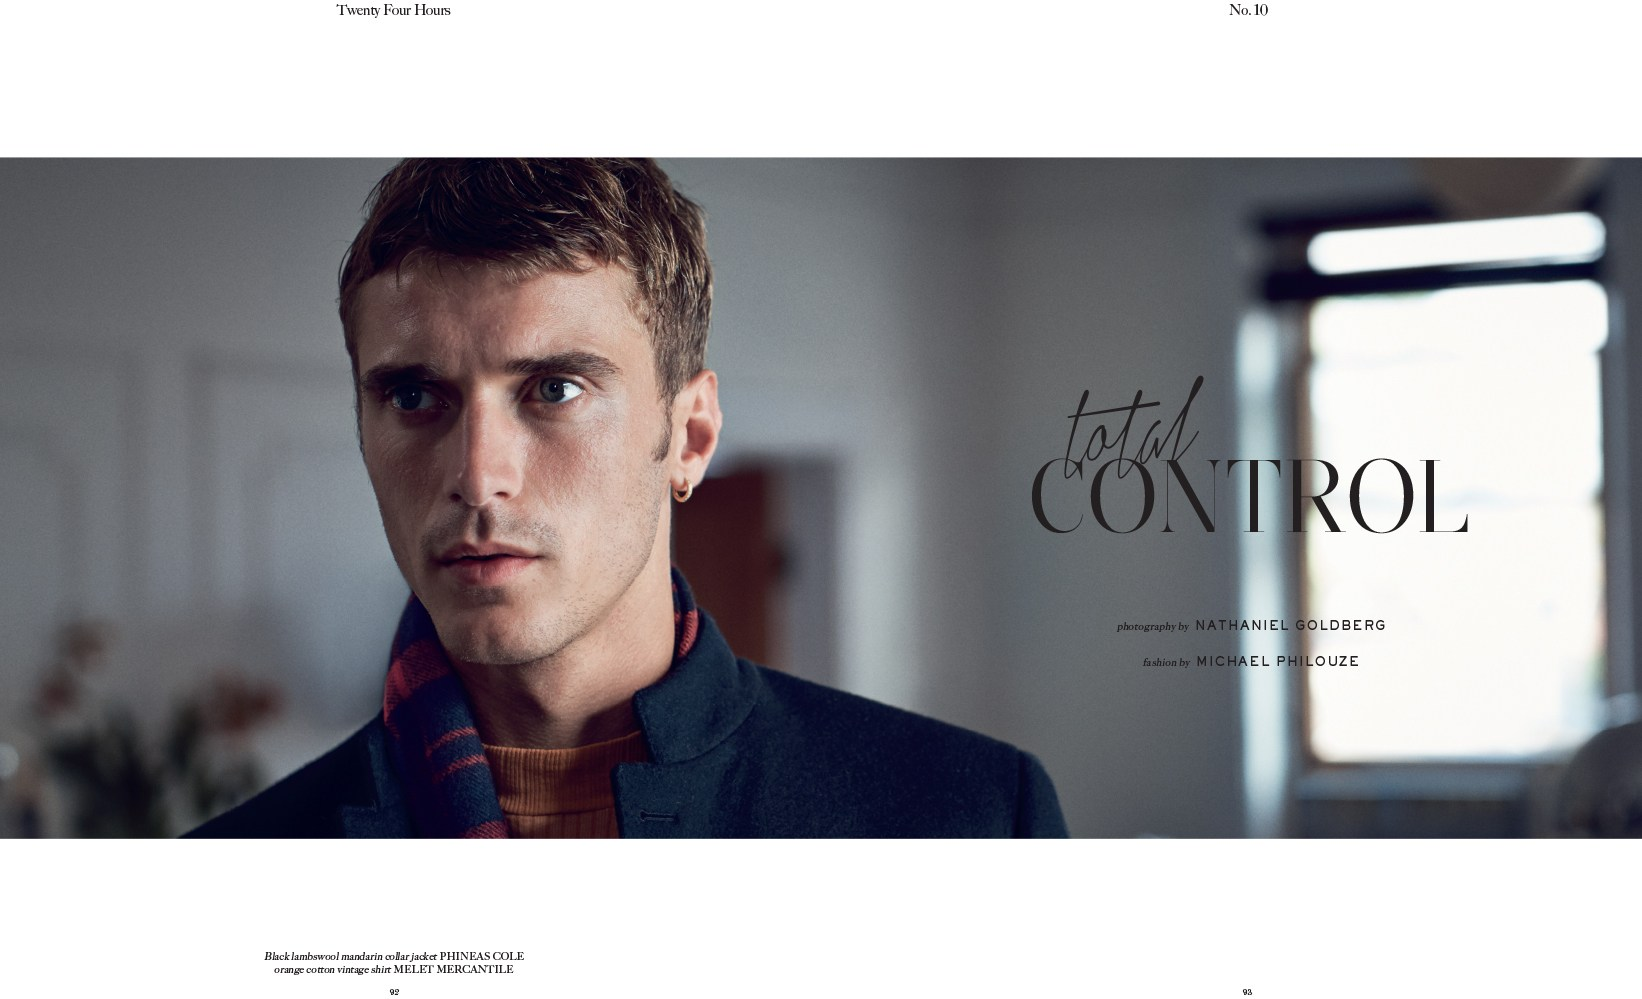 Total Control | Man of the World Issue 10